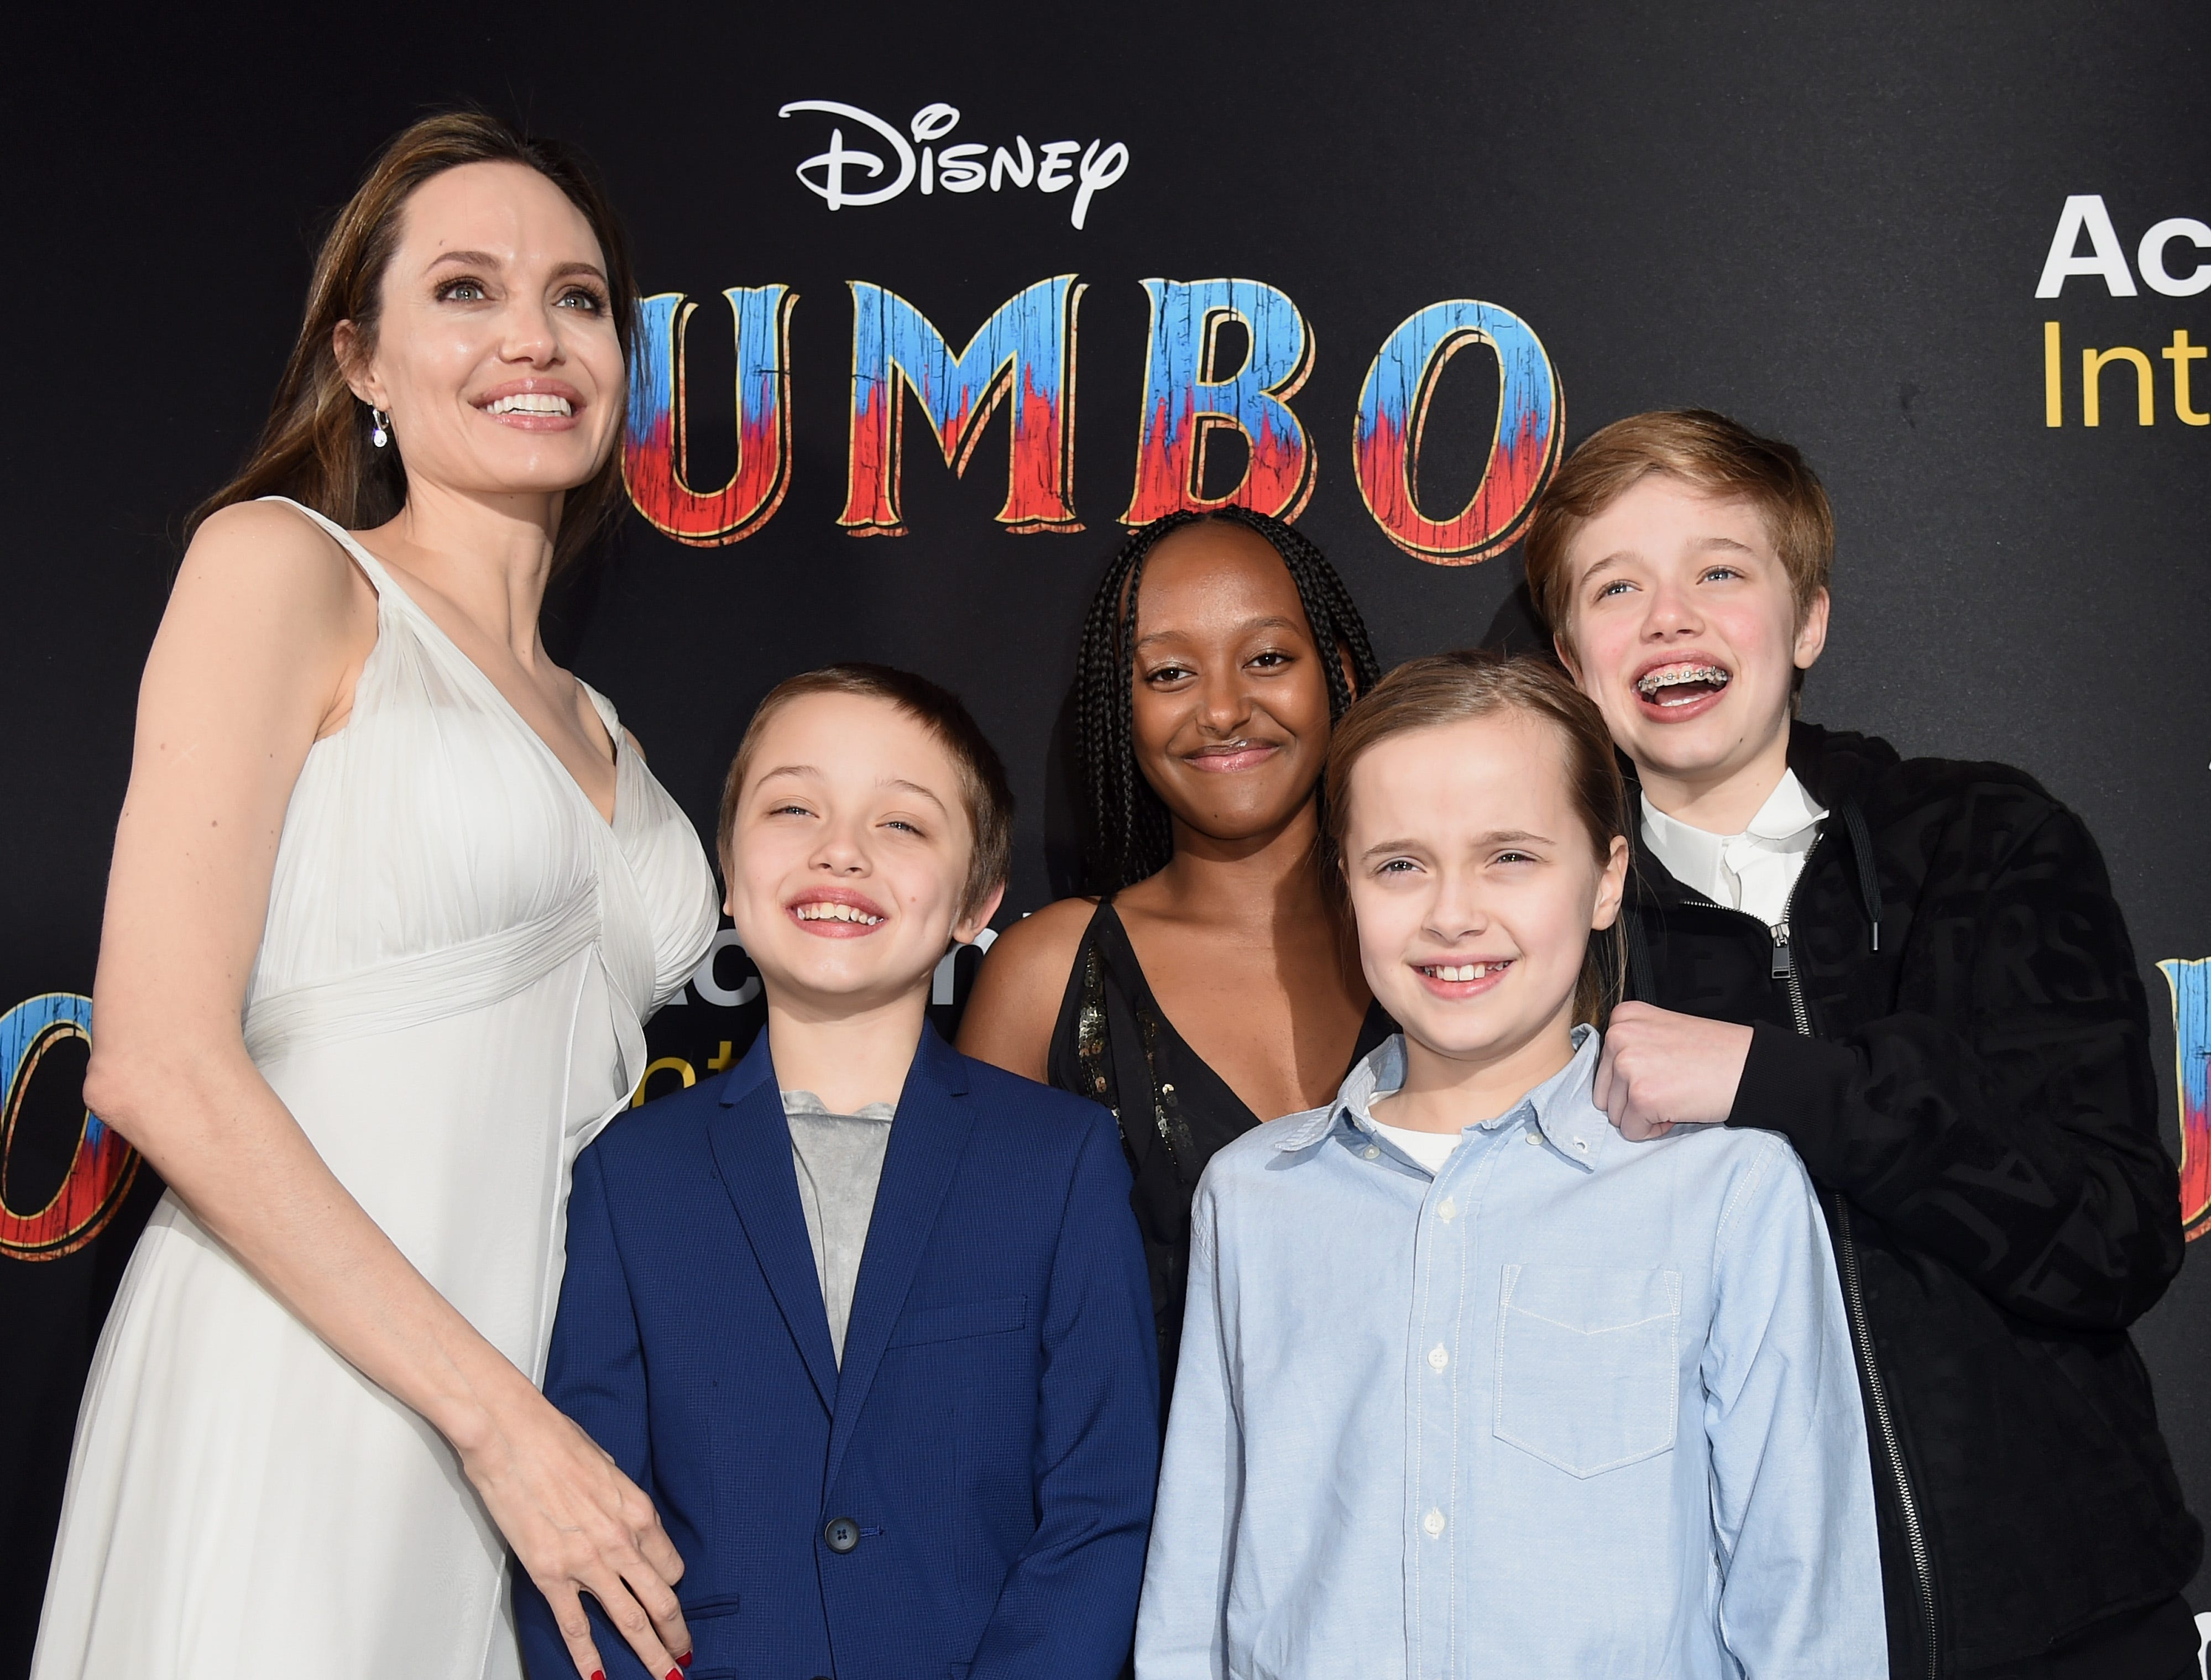 """LOS ANGELES, CALIFORNIA - MARCH 11: Angelina Jolie, Knox Leon Jolie-Pitt, Zahara Marley Jolie-Pitt, Vivienne Marcheline Jolie-Pitt, and Shiloh Nouvel Jolie-Pitt attend the premiere of Disney's """"Dumbo"""" at El Capitan Theatre on March 11, 2019 in Los Angeles, California. (Photo by Kevin Winter/Getty Images) ORG XMIT: 775305574 ORIG FILE ID: 1135223470"""